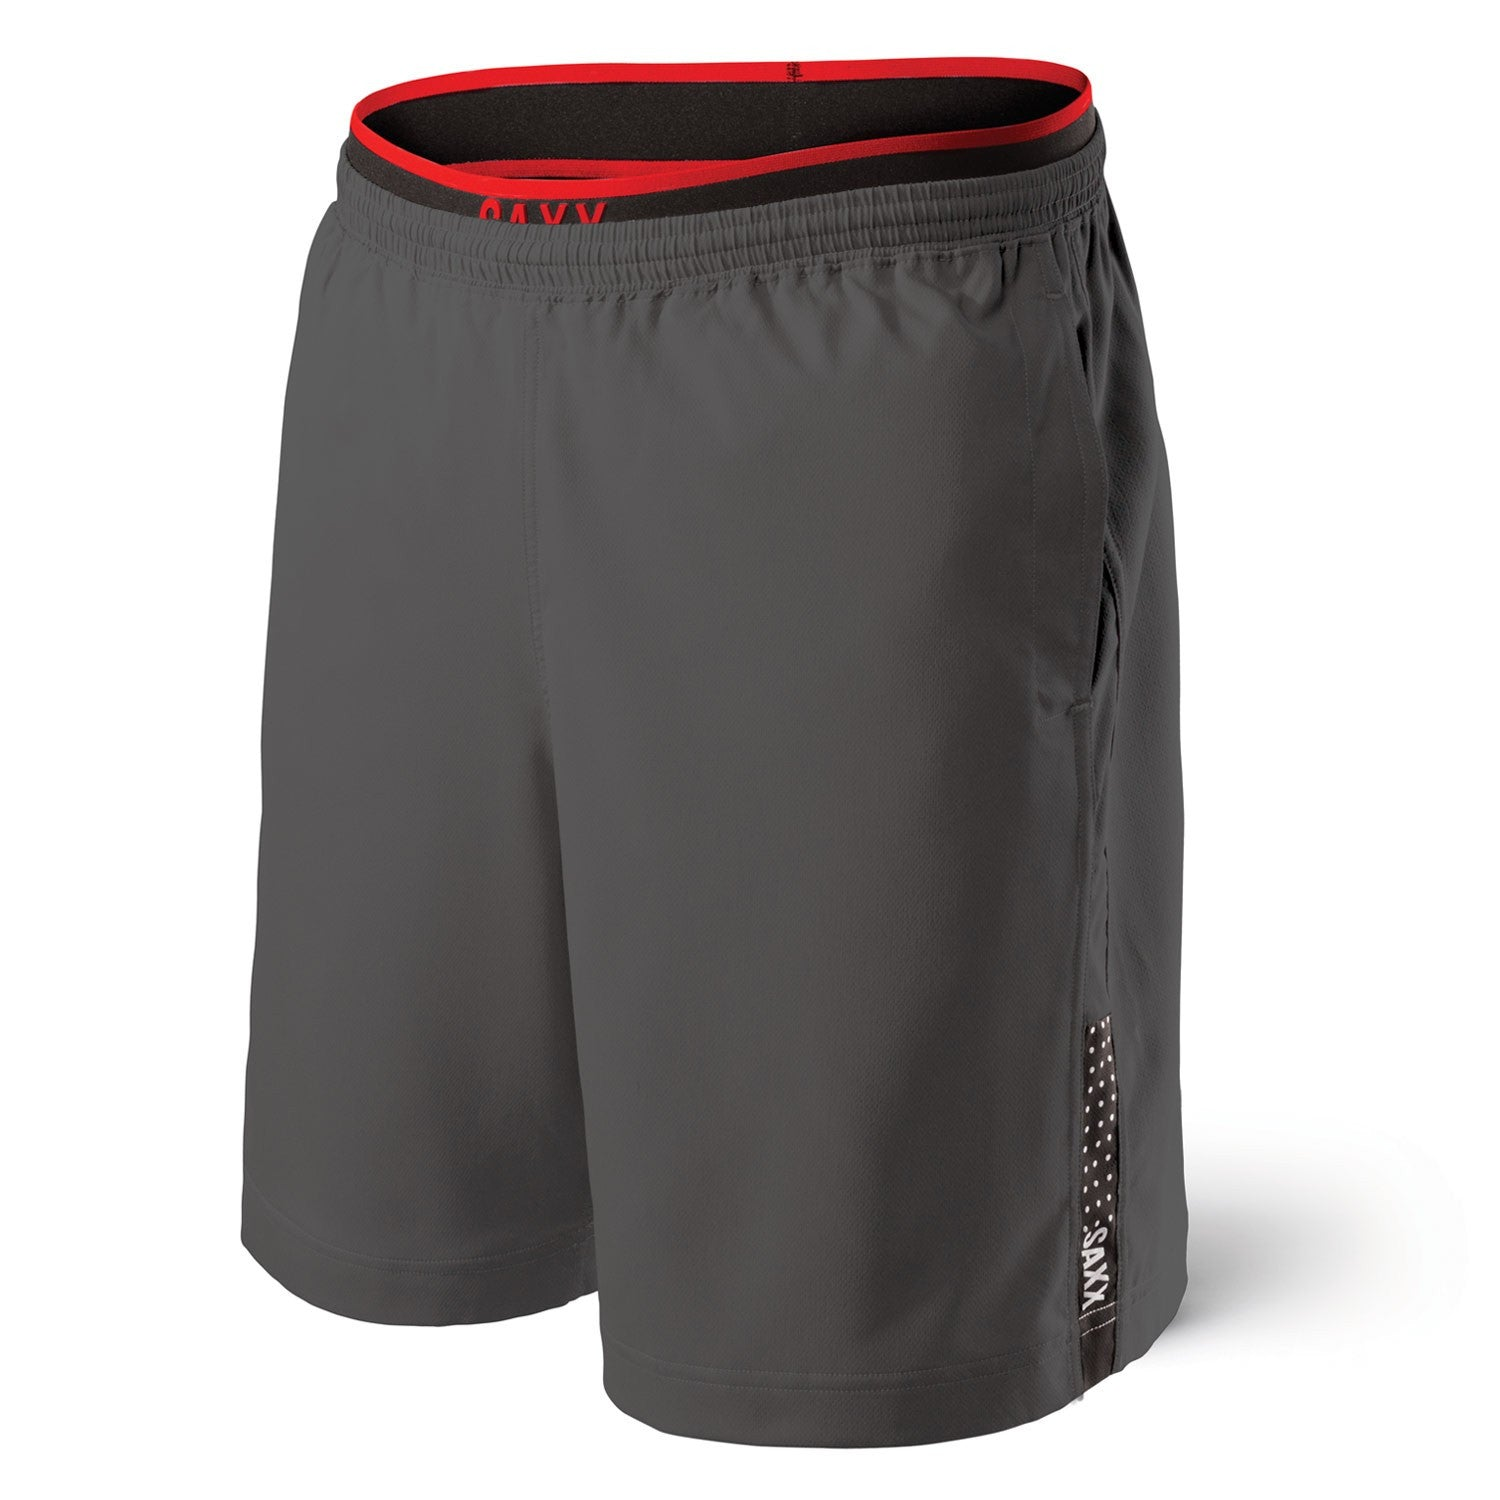 Saxx Kinetic 2-IN-1 Train Shorts SXGS27